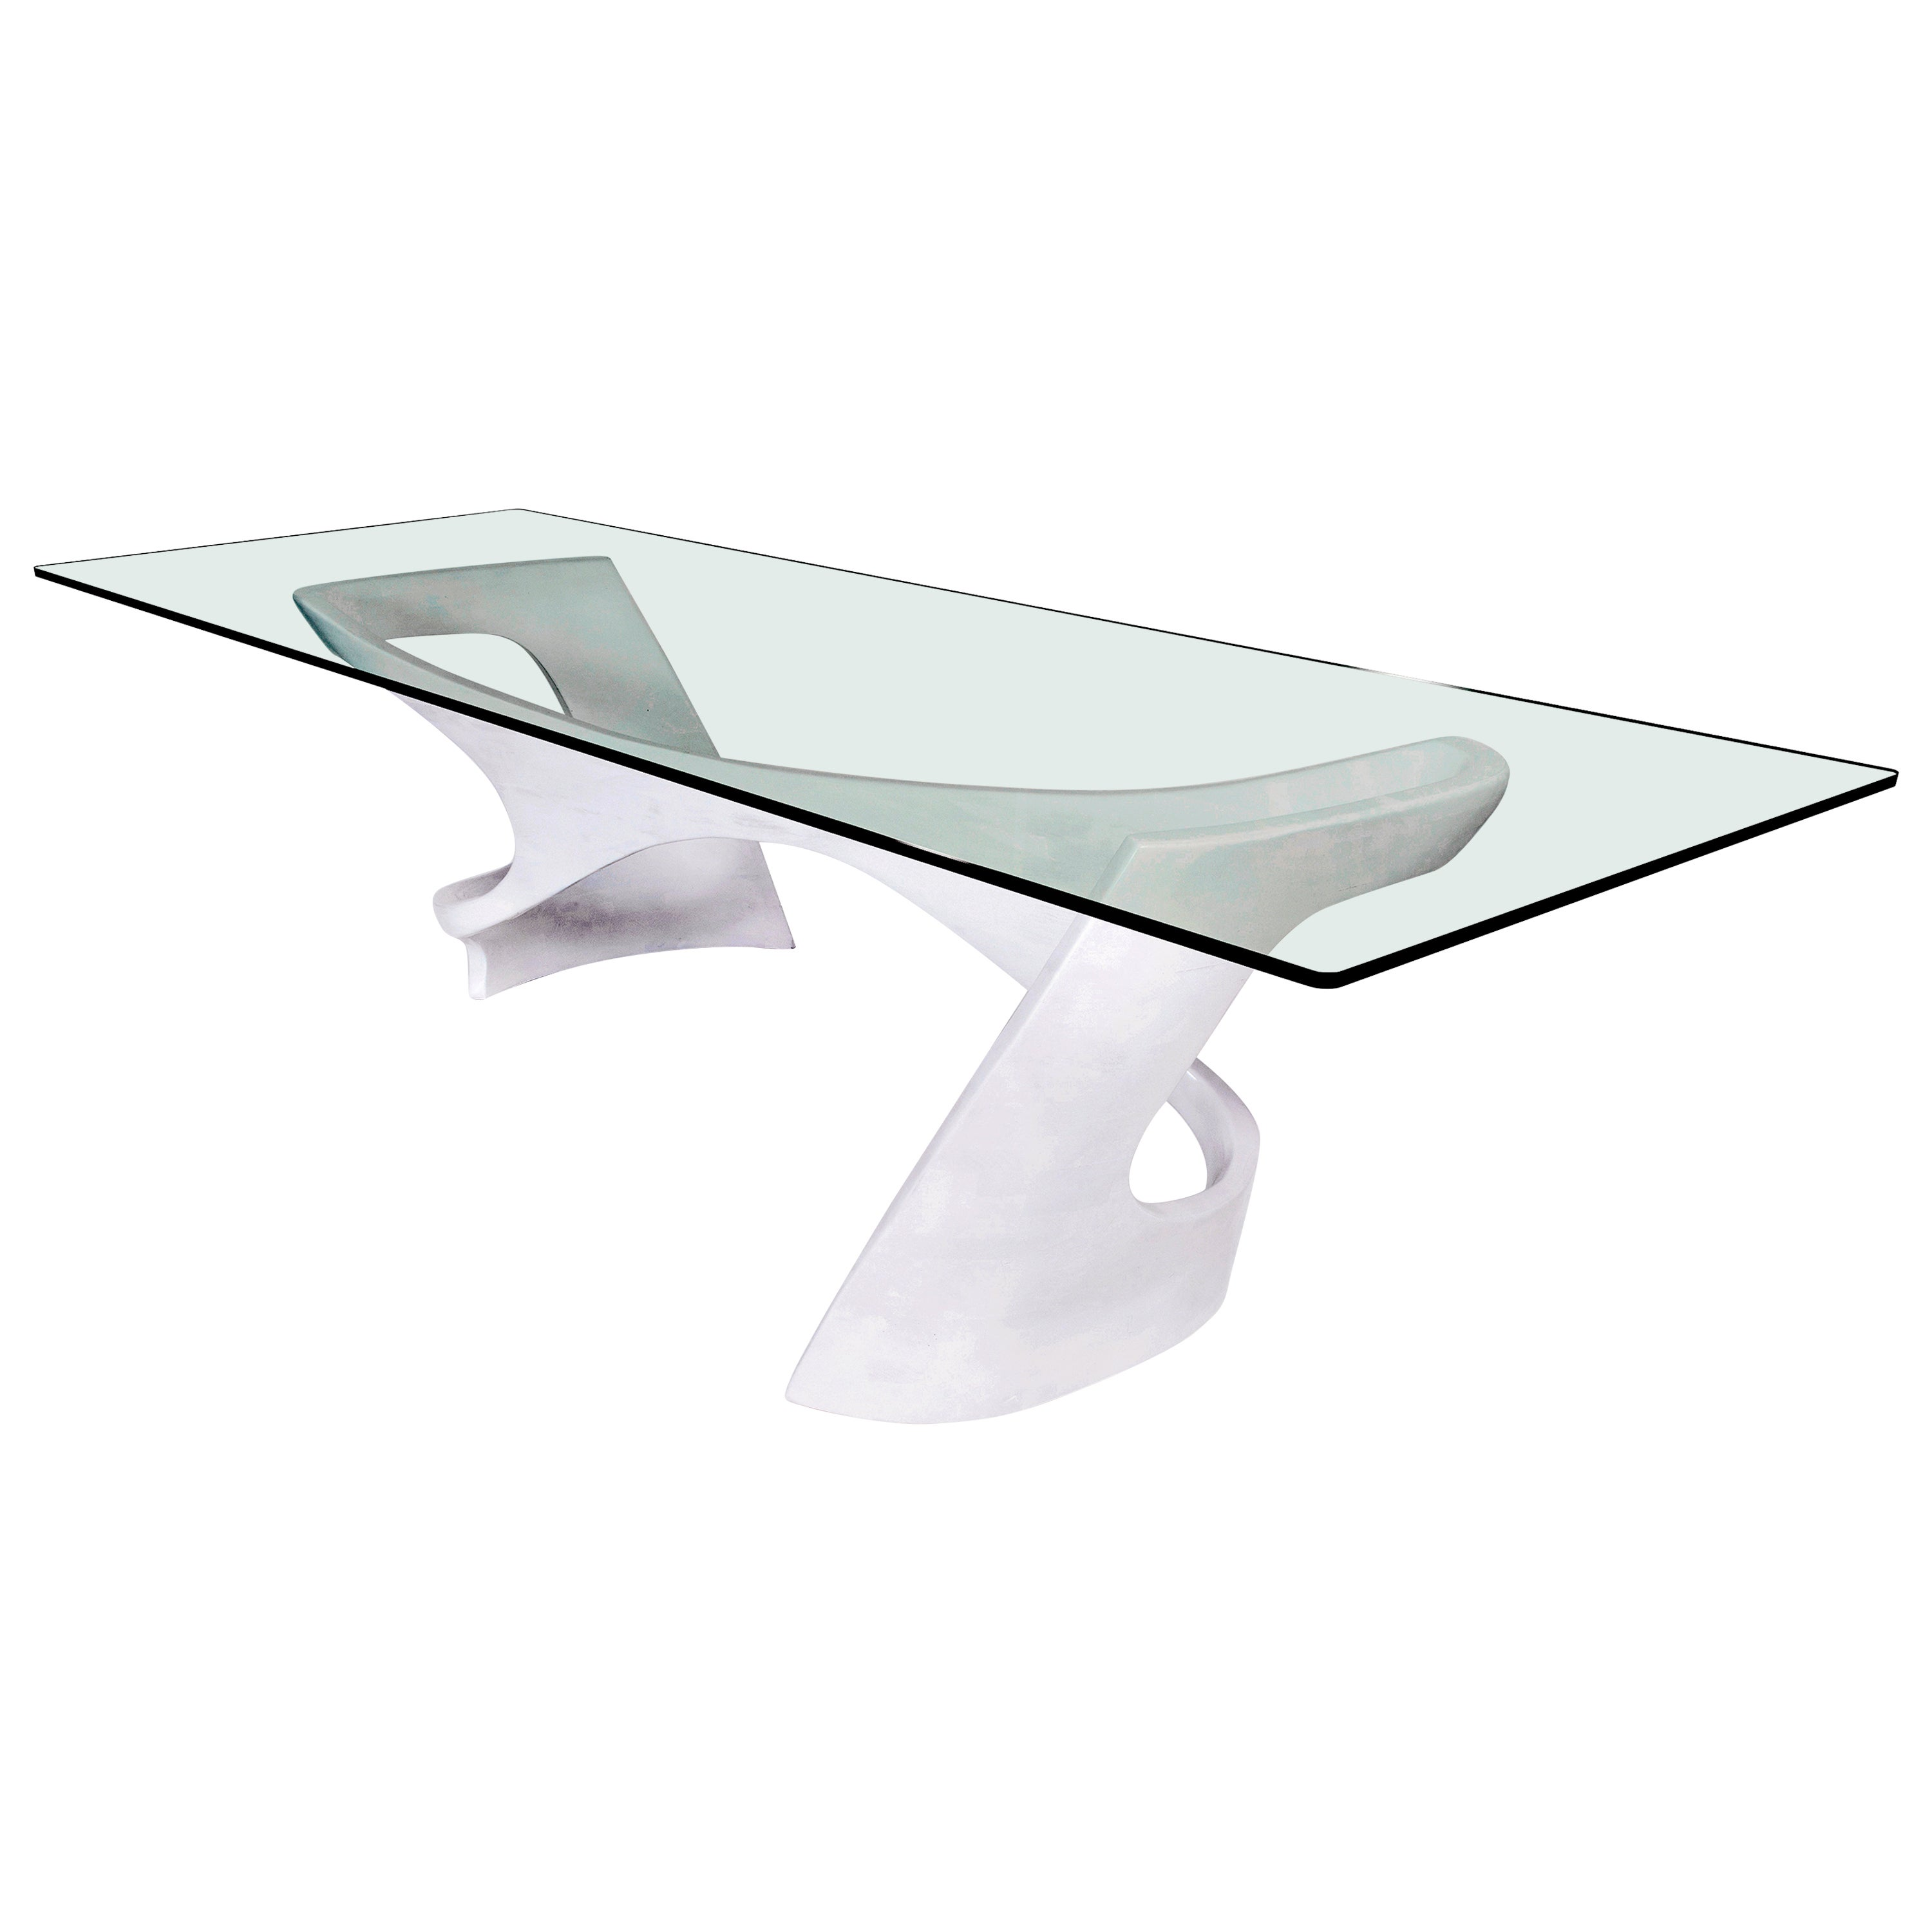 N2 Dining Table, Handcrafted Base in Solid Wood with Glass Top